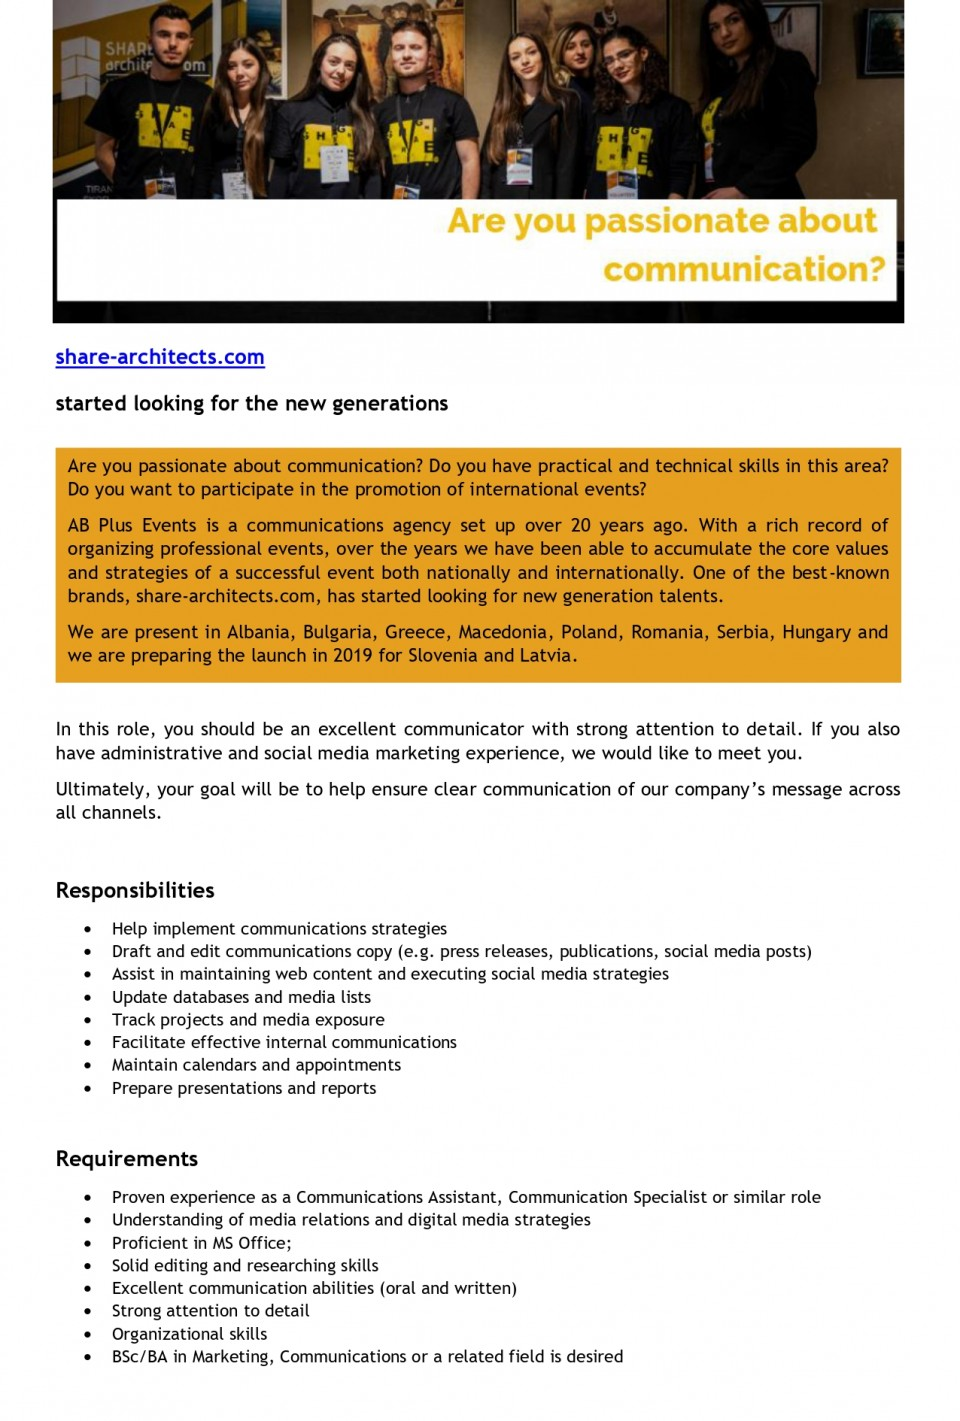 share-architects.com started looking for the new generations  Are you passionate about communication? Do you have practical and technical skills in this area? Do you want to participate in the promotion of international events?  AB Plus Events is a communications agency set up over 20 years ago. With a rich record of organizing professional events, over the years we have been able to accumulate the core values and strategies of a successful event both nationally and internationally. One of the best-known brands, share-architects.com, has started looking for new generation talents.  We are present in Albania, Bulgaria, Greece, Macedonia, Poland, Romania, Serbia, Hungary and we are preparing the launch in 2019 for Slovenia and Latvia.  We are looking for a Communications Assistant, so if you want to share with us the multicultural experience of communication, we invite you to write to share@abplusevents.com.  In this role, you should be an excellent communicator with strong attention to detail. If you also have administrative and social media marketing experience, we'd like to meet you.  Requirements   Proven experience as a Communications Assistant, Communication Specialist or similar role Understanding of media relations and digital media strategies; Proficient in MS Office; familiarity with design software (e.g. Photoshop, InDesign) and content management systems is a plus; Solid editing and researching skills; Excellent communication abilities (oral and written); Strong attention to detail; Organizational skills; BSc/BA in Marketing, Communications or a related field is desired.  Editing and writing company materials will be an important part of your job. Ultimately, your goal will be to help ensure clear communication of our company's message across all channels.  Communications Assistant Responsibilities include:  Helping implement communications projects and strategies; Drafting and editing materials and communications copy; Collecting data and maintaining data